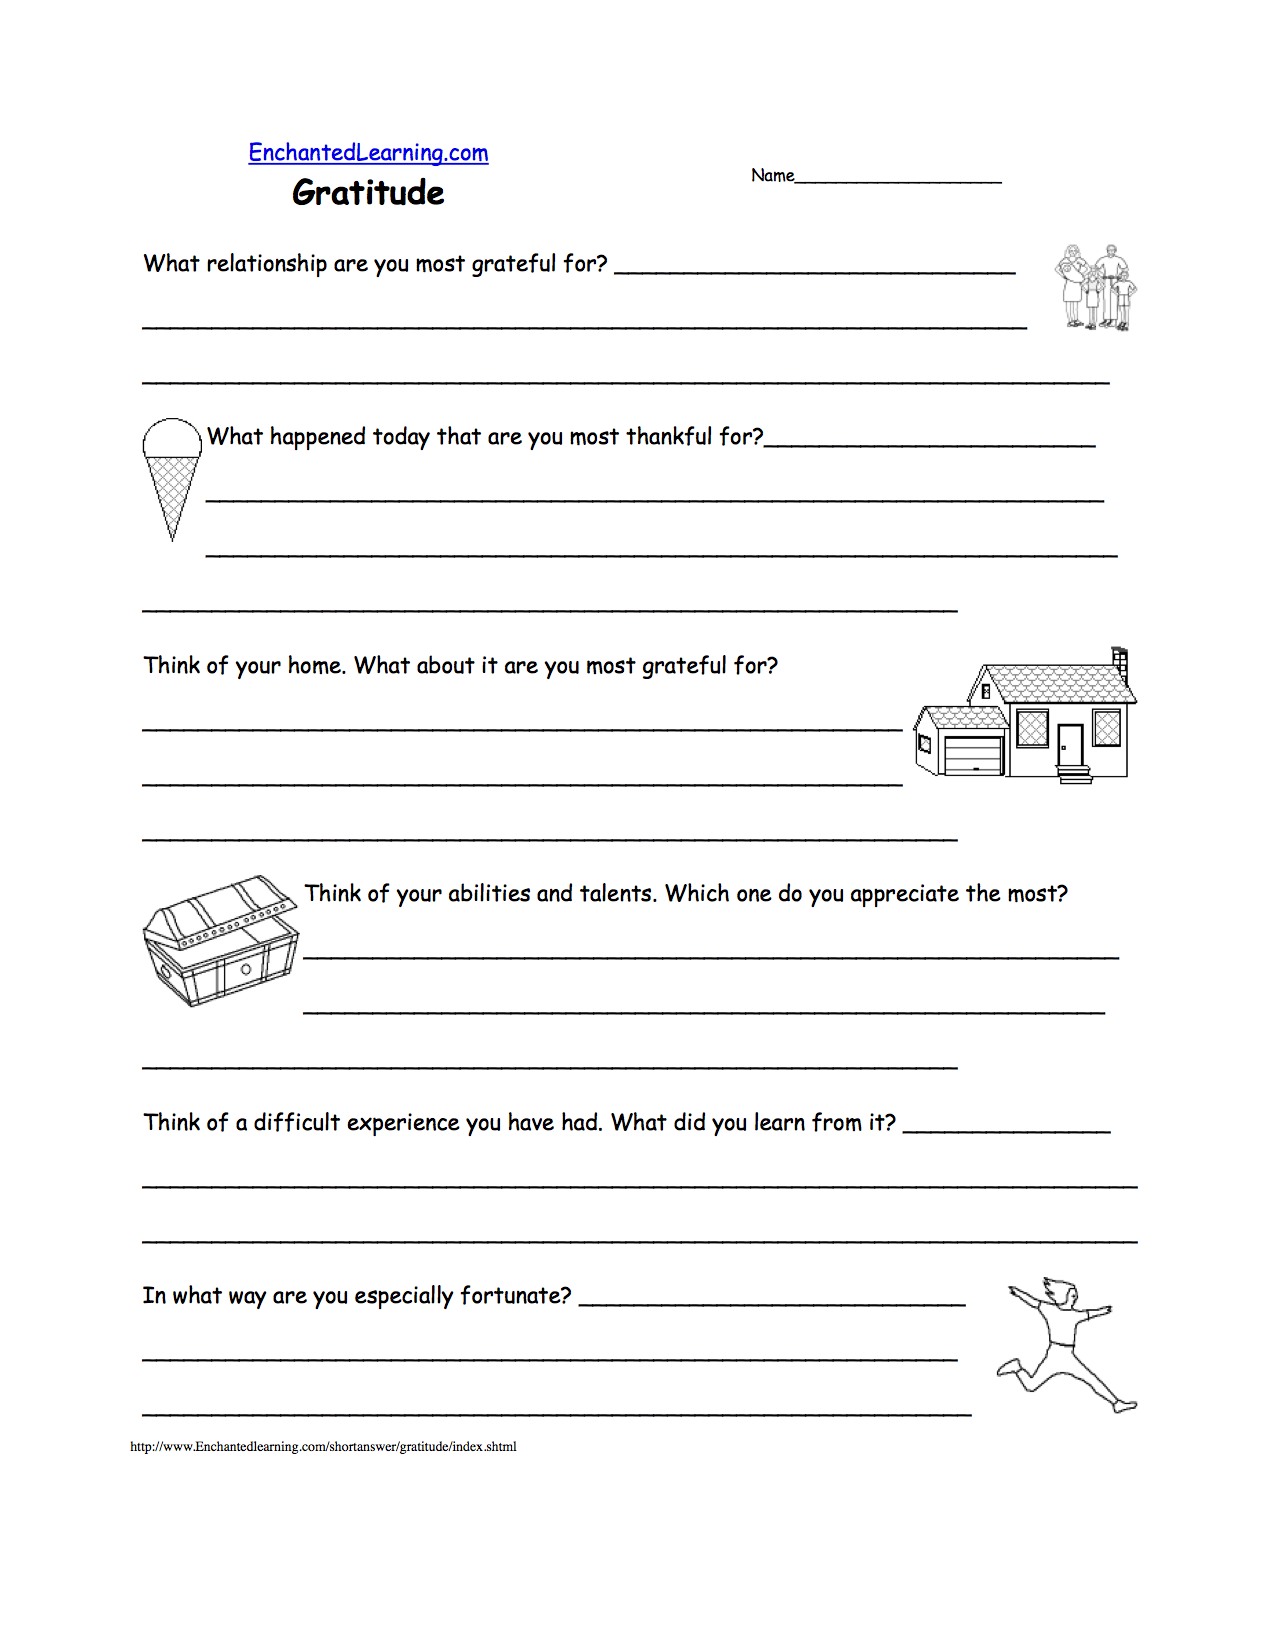 worksheet Happiness Worksheets happiness at enchantedlearning com thanksgiving